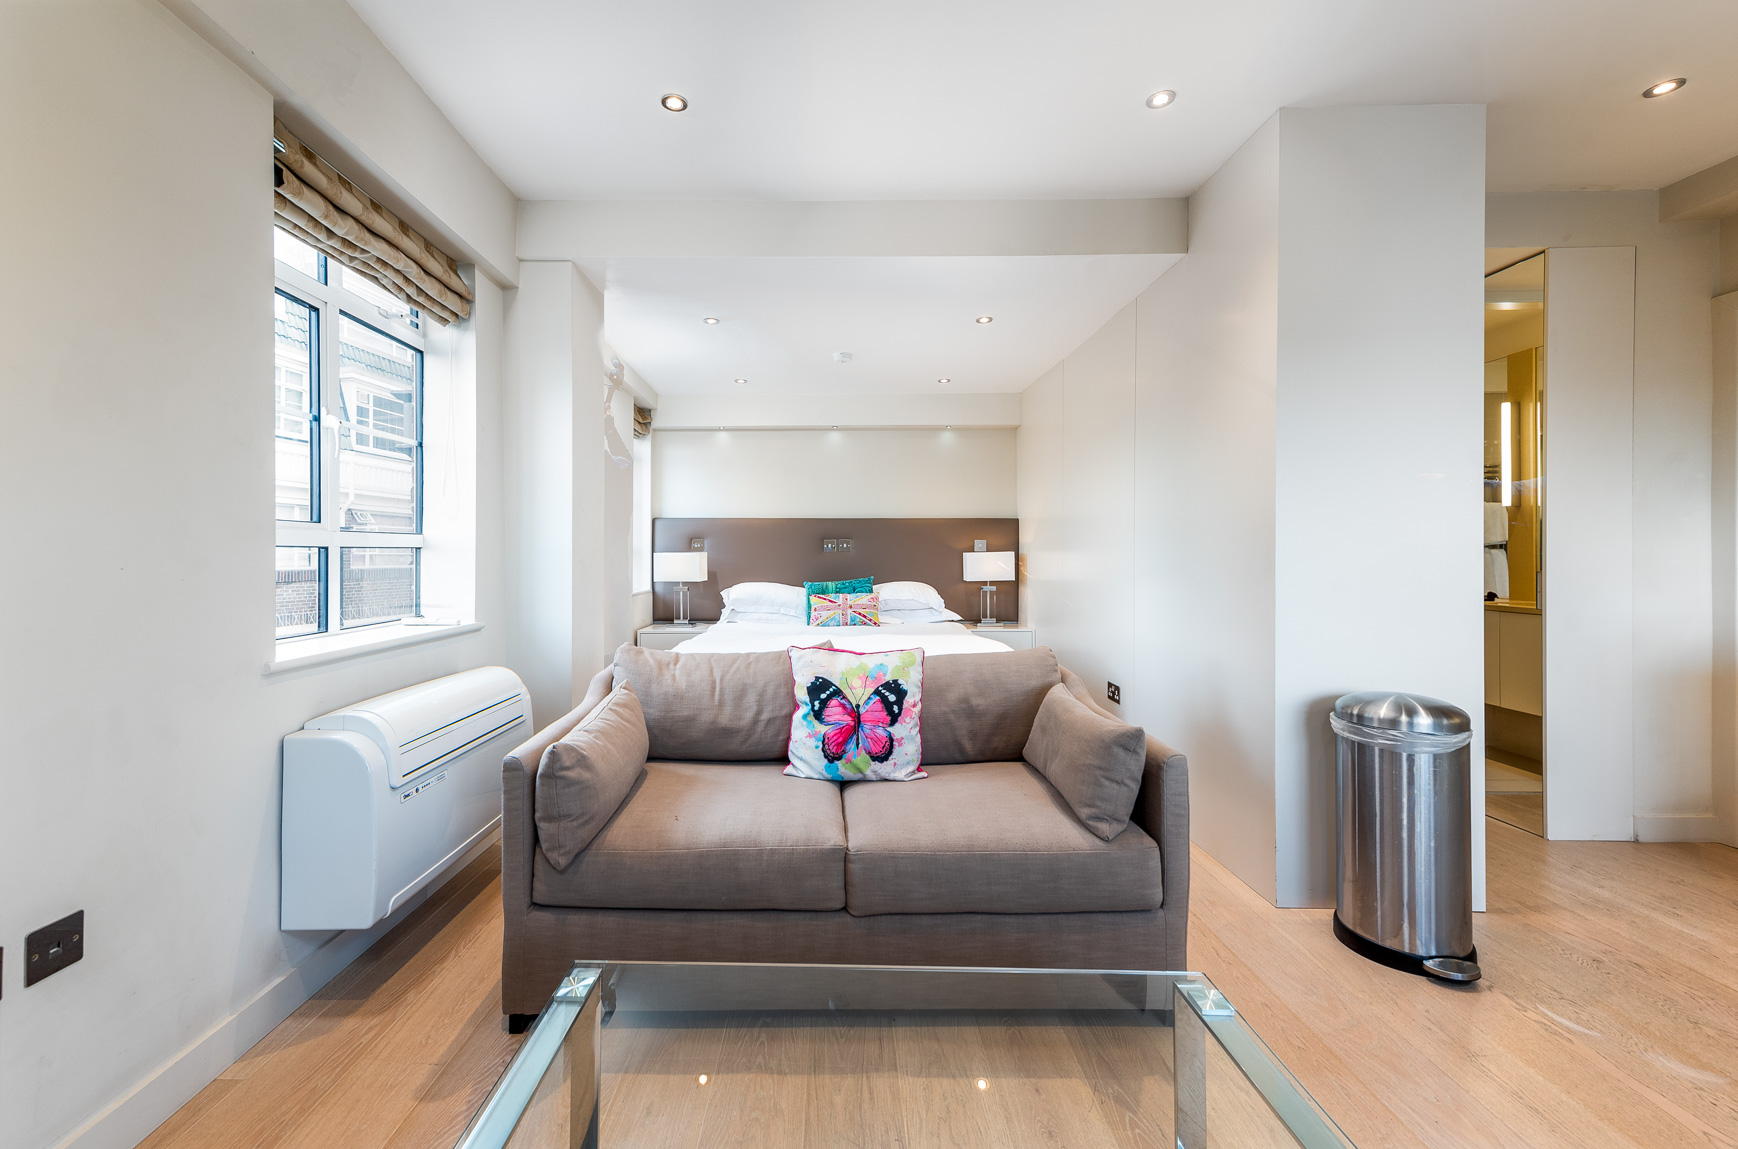 Studio at Nell Gwynn House Accommodation, Chelsea, London - Citybase Apartments